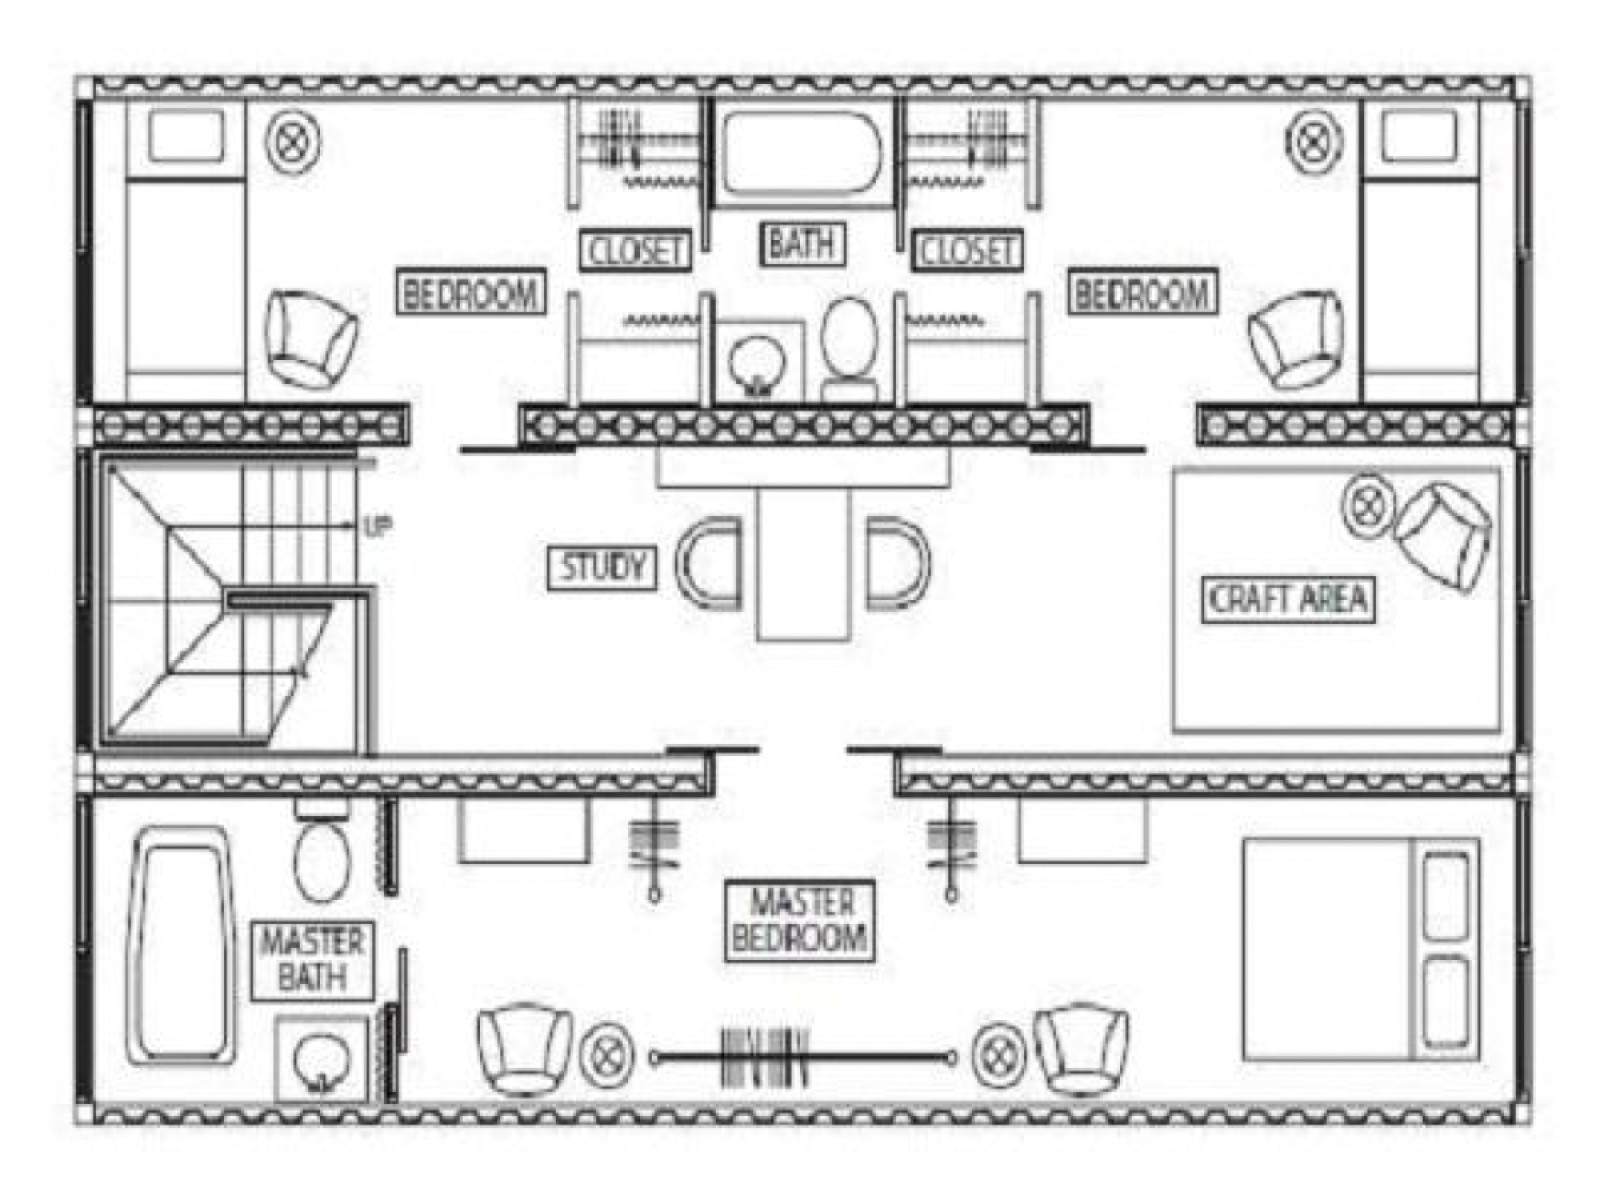 connex homes in shipping container apartment plans conex homes pertaining to looking for shipping container sizes for homes